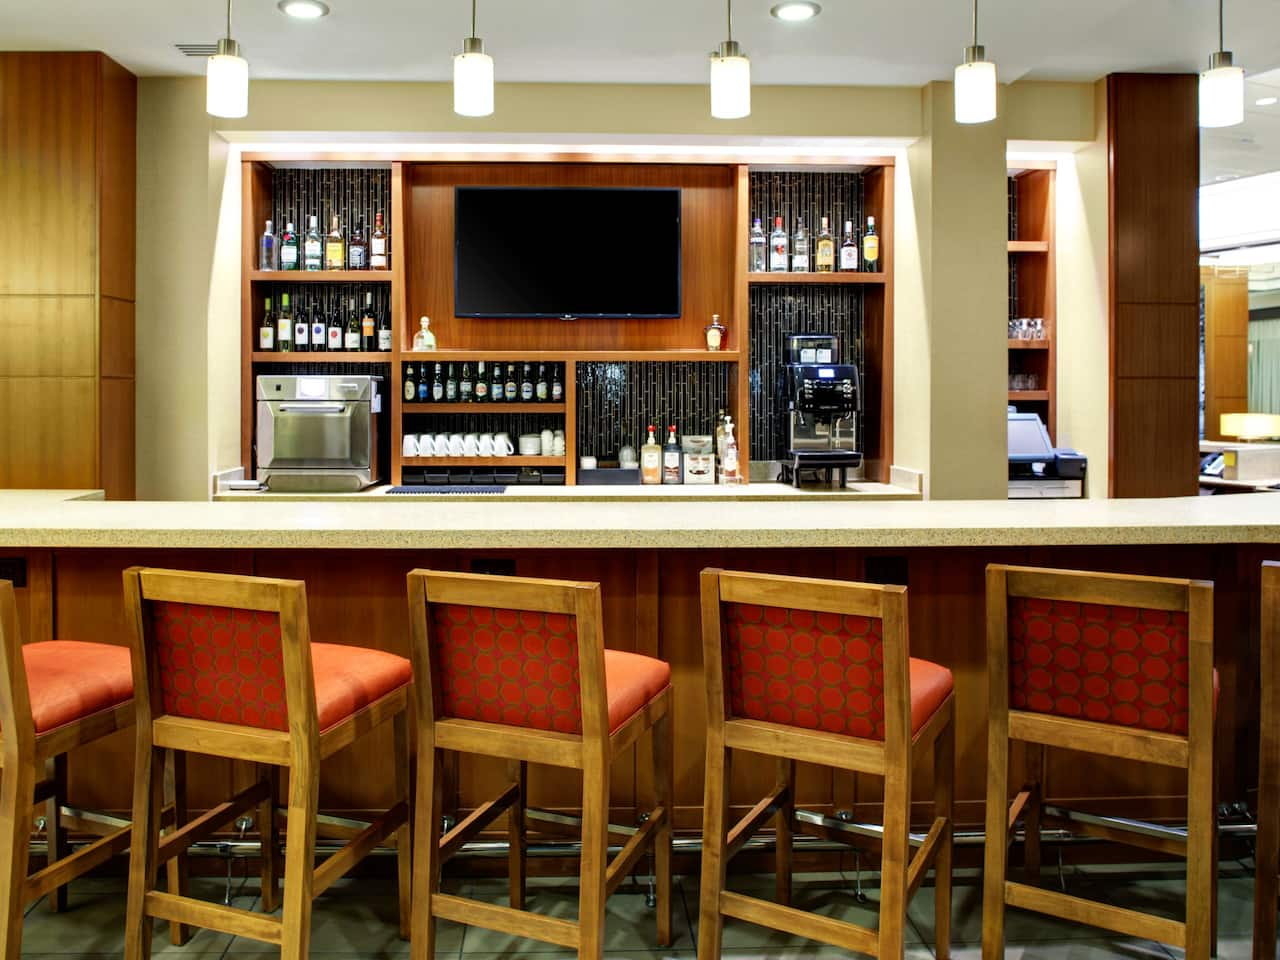 Hyatt Place Columbia / Downtown / The Vista lobby bar